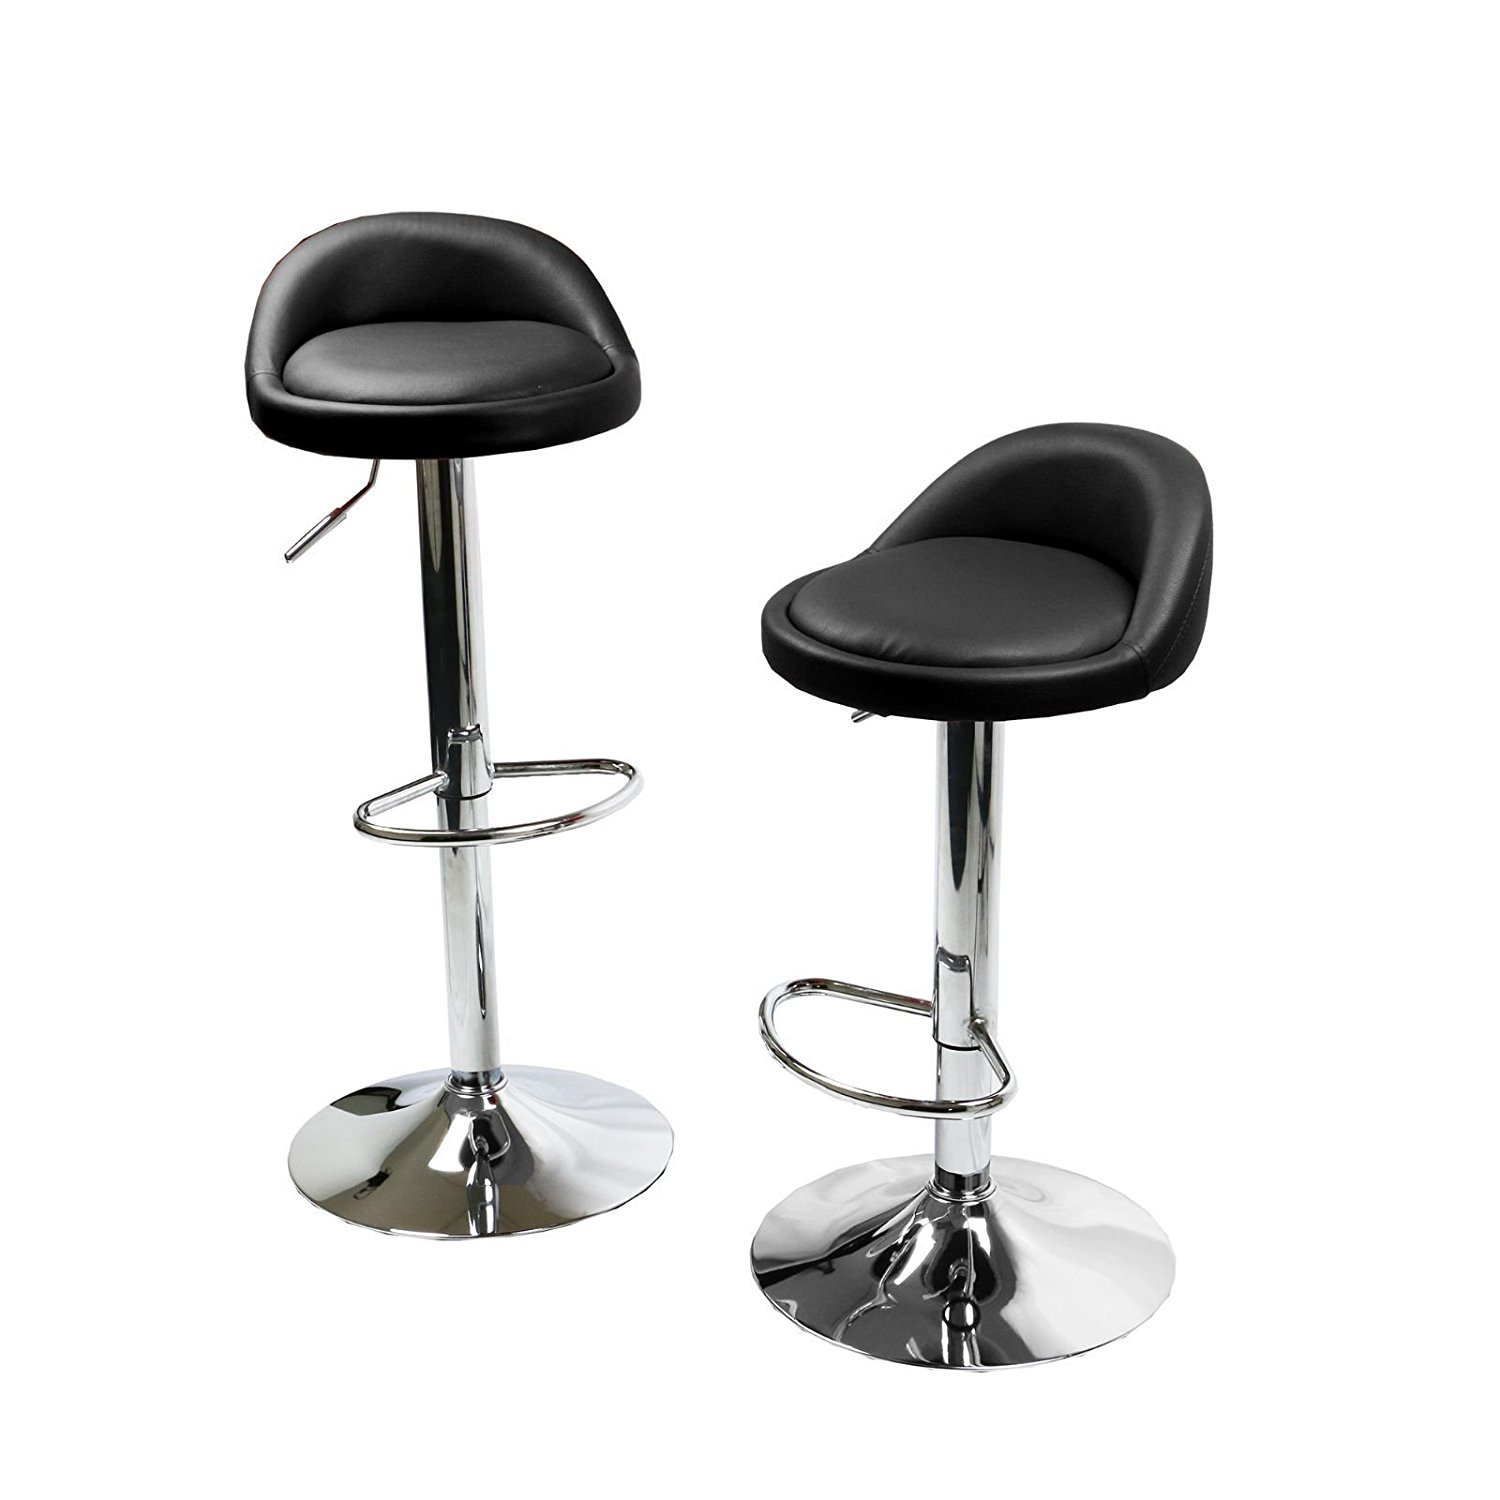 Round Bar Stools Swivel Kitchen Dinning Counter Adjustable Height Barstool Chair - Set of 2 Black